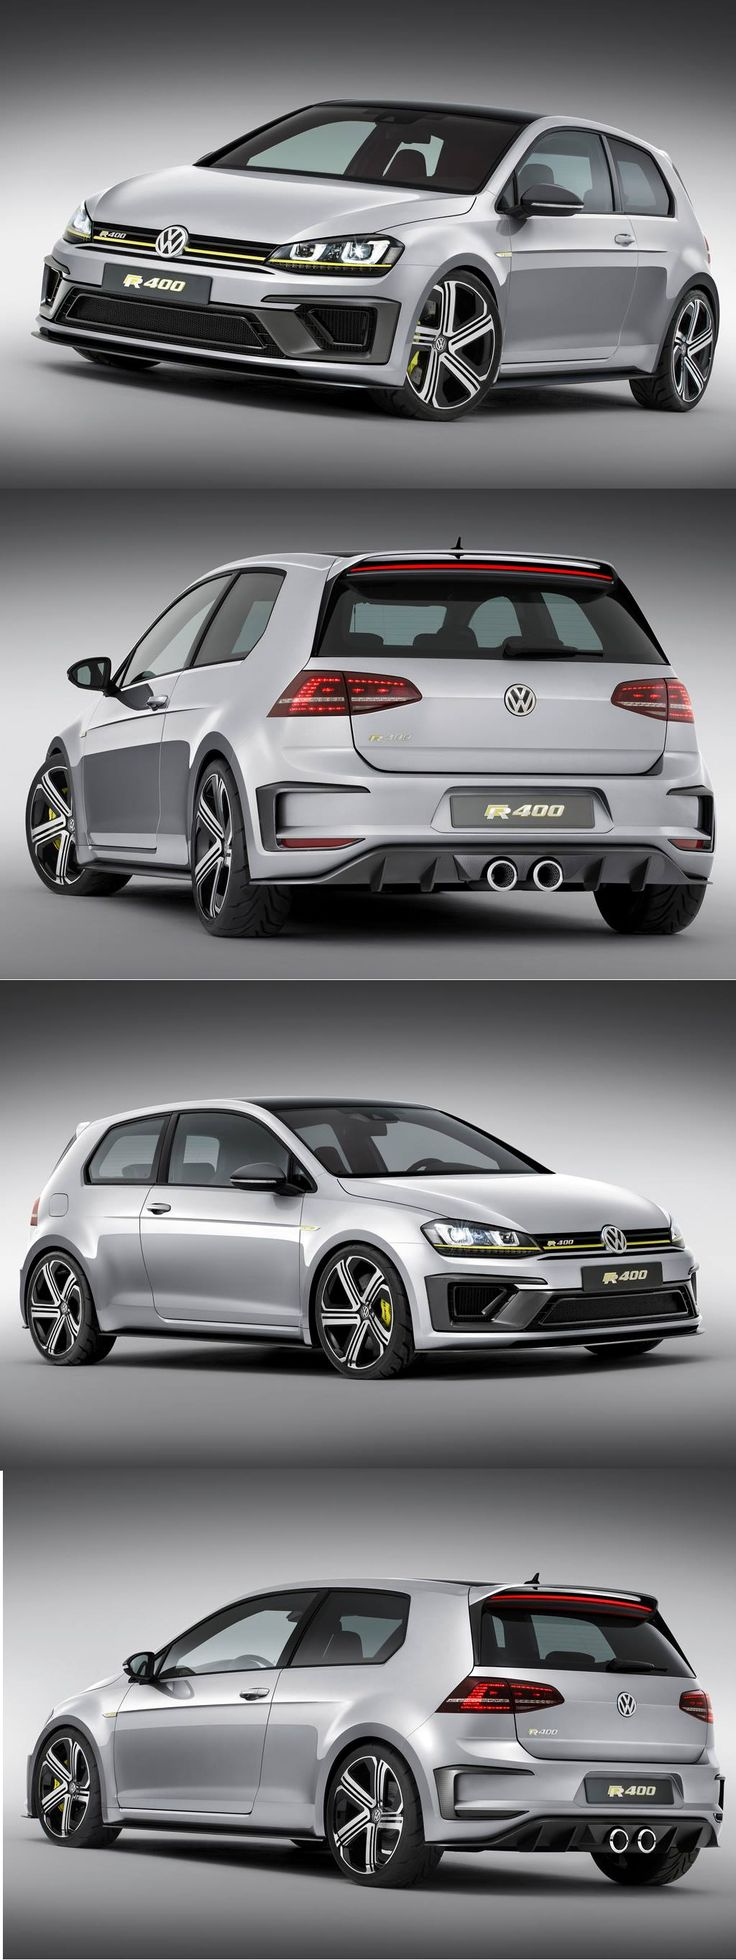 VW'S new Golf R400! Honestly an amazing car, with a 2.0 litre engine it is able to put out 395bhp and get from 0-62mph in 3.9 seconds!